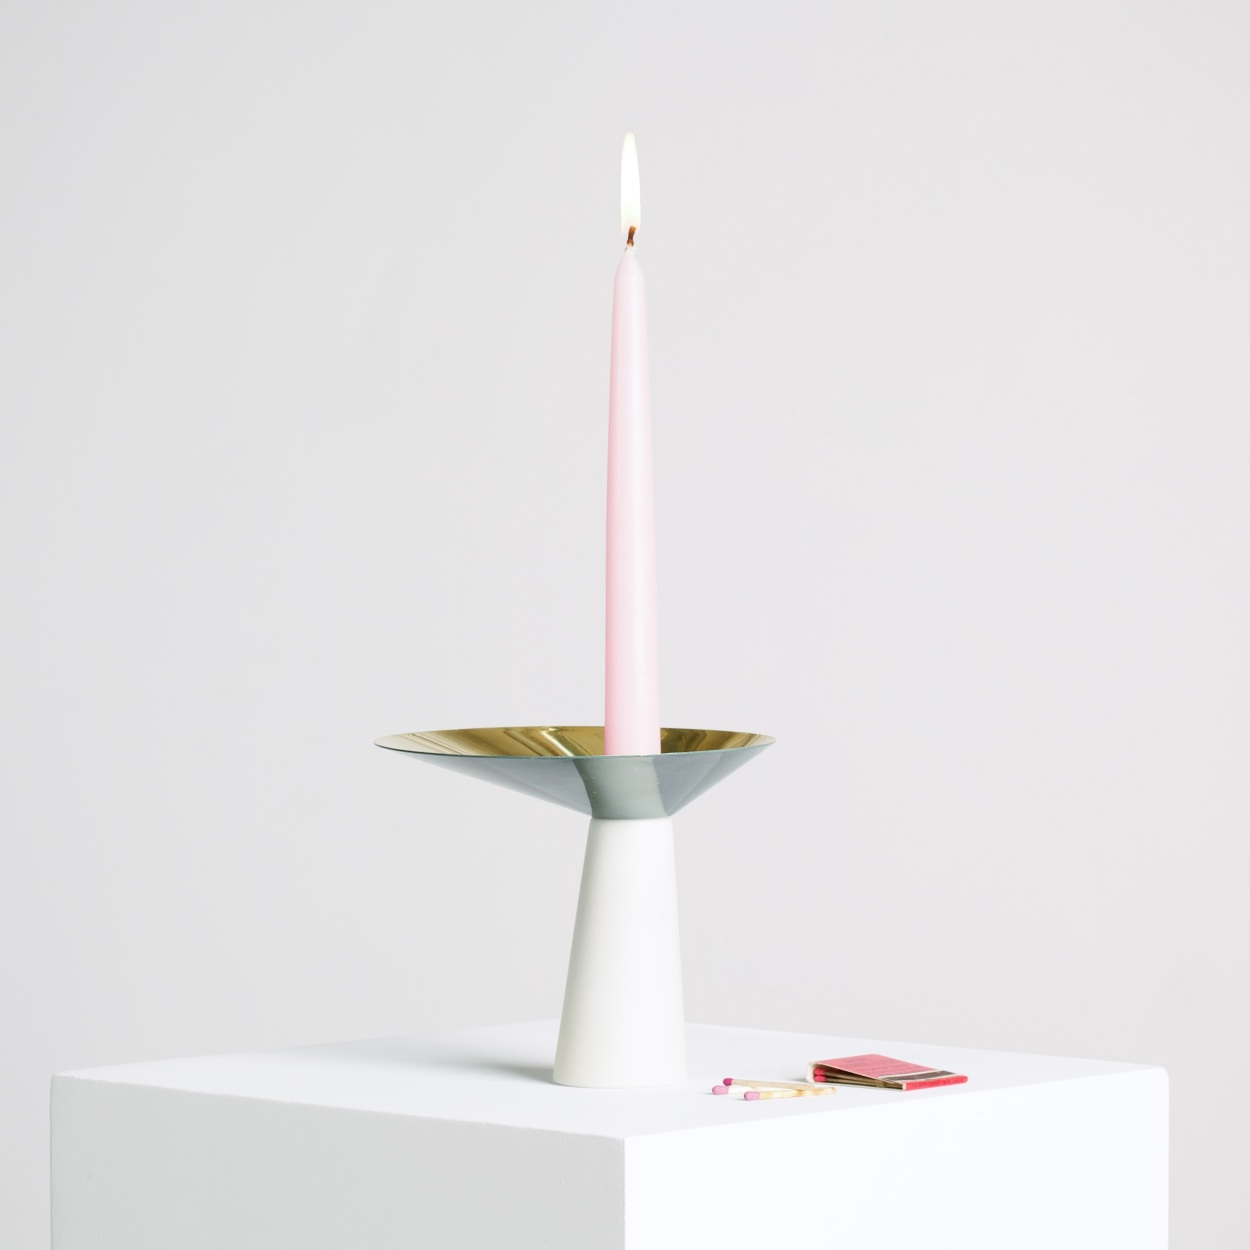 Asymmetrical Candle Holder 2014 Lukas Peet Design